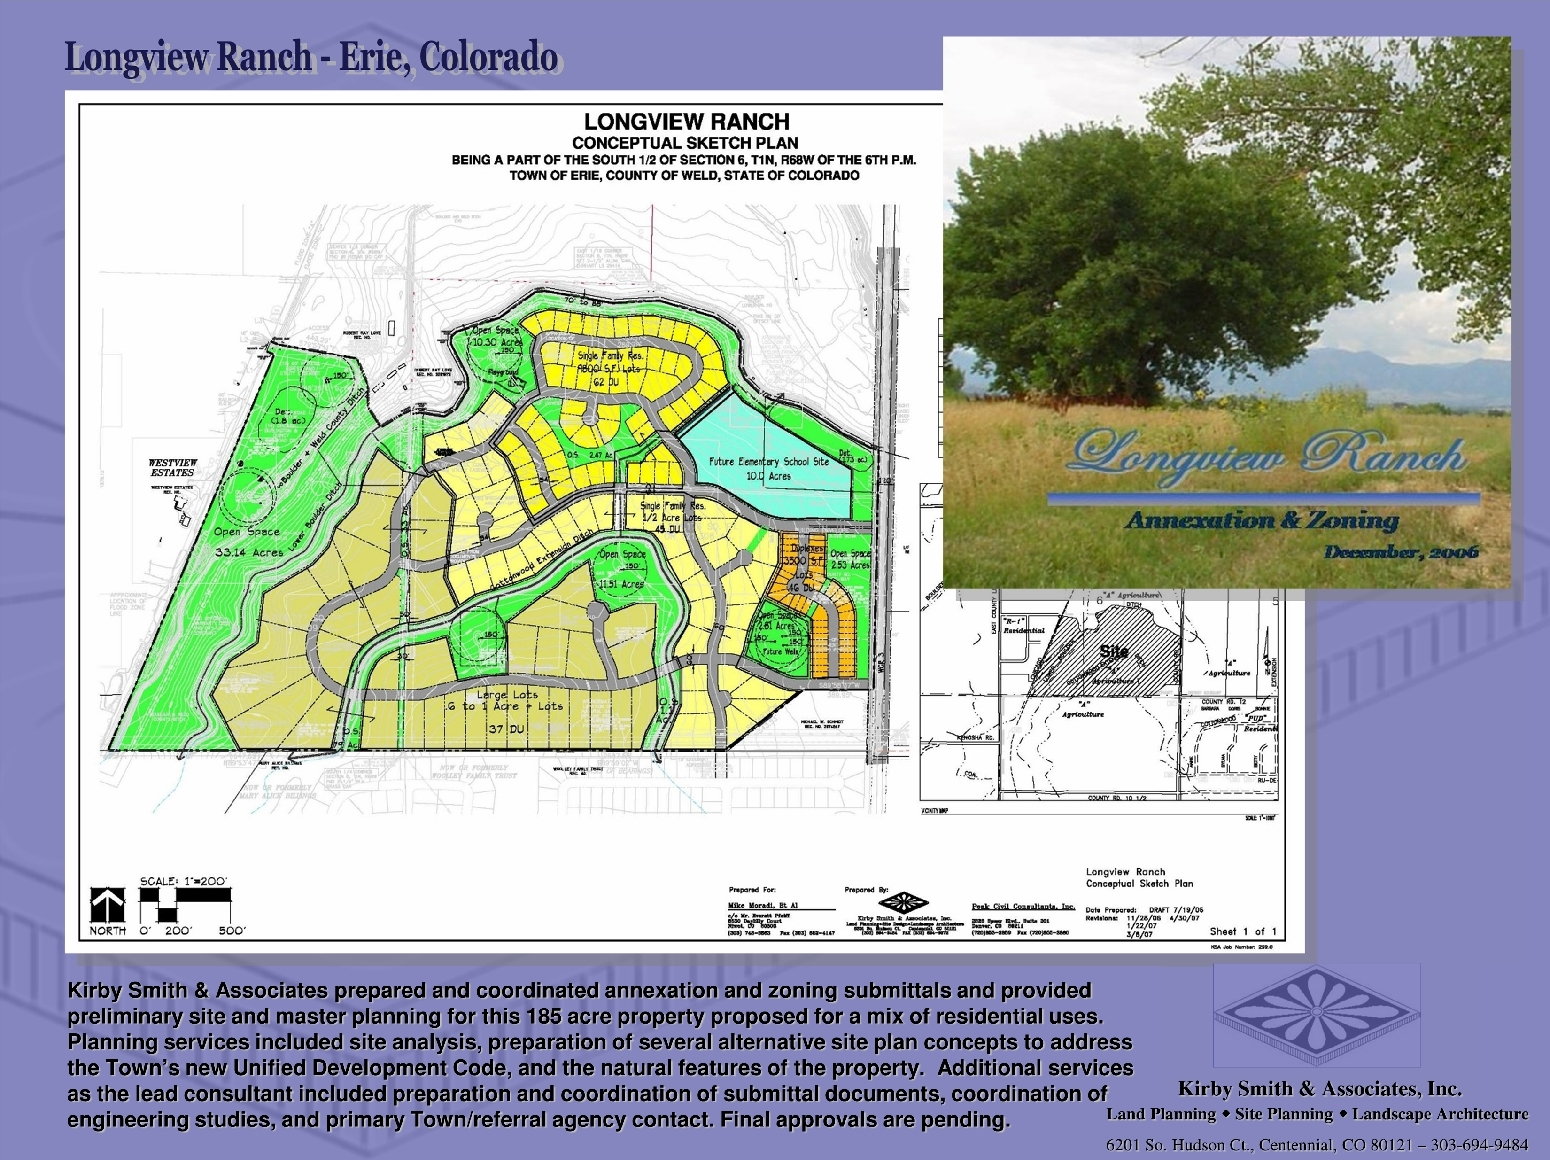 KSA, Inc. prepared and coordinated annexation & zoning submittals and provided preliminary site and master planning for this 185 acre property proposed for a mix of residential uses.  Services included site analysis, preparation of site plan concepts to address the Town's Development Code, and the natural features of the property.  As lead consultant services included coordination of submittal documents, engineering studies, and primary Town/referral agency contact.